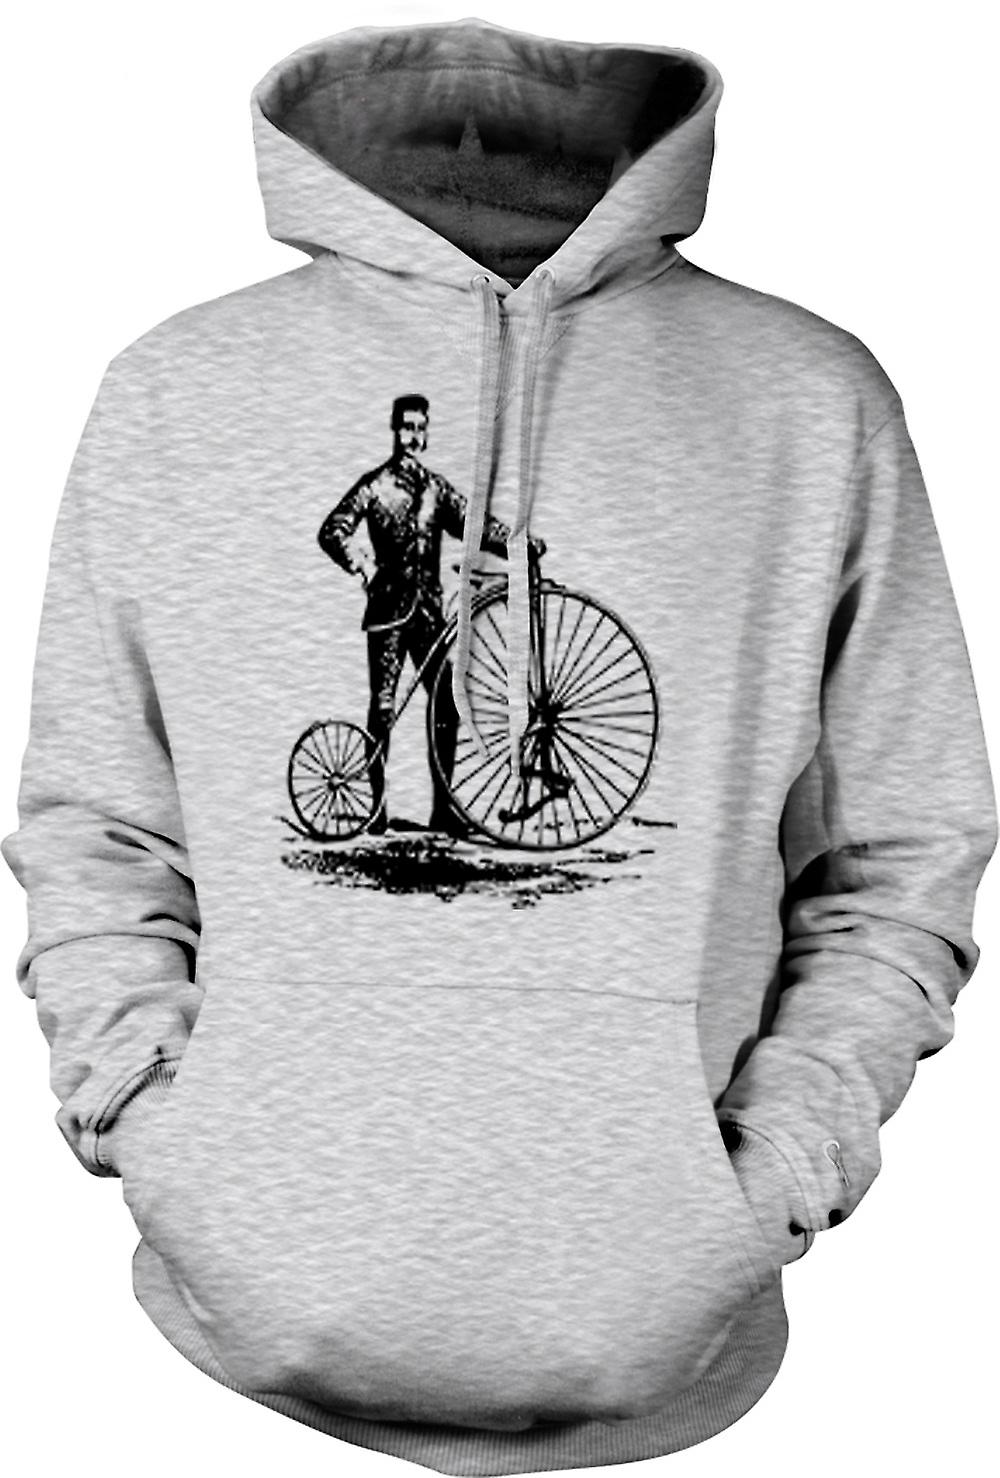 Mens Hoodie - Penny Farthing Classic Bicycle